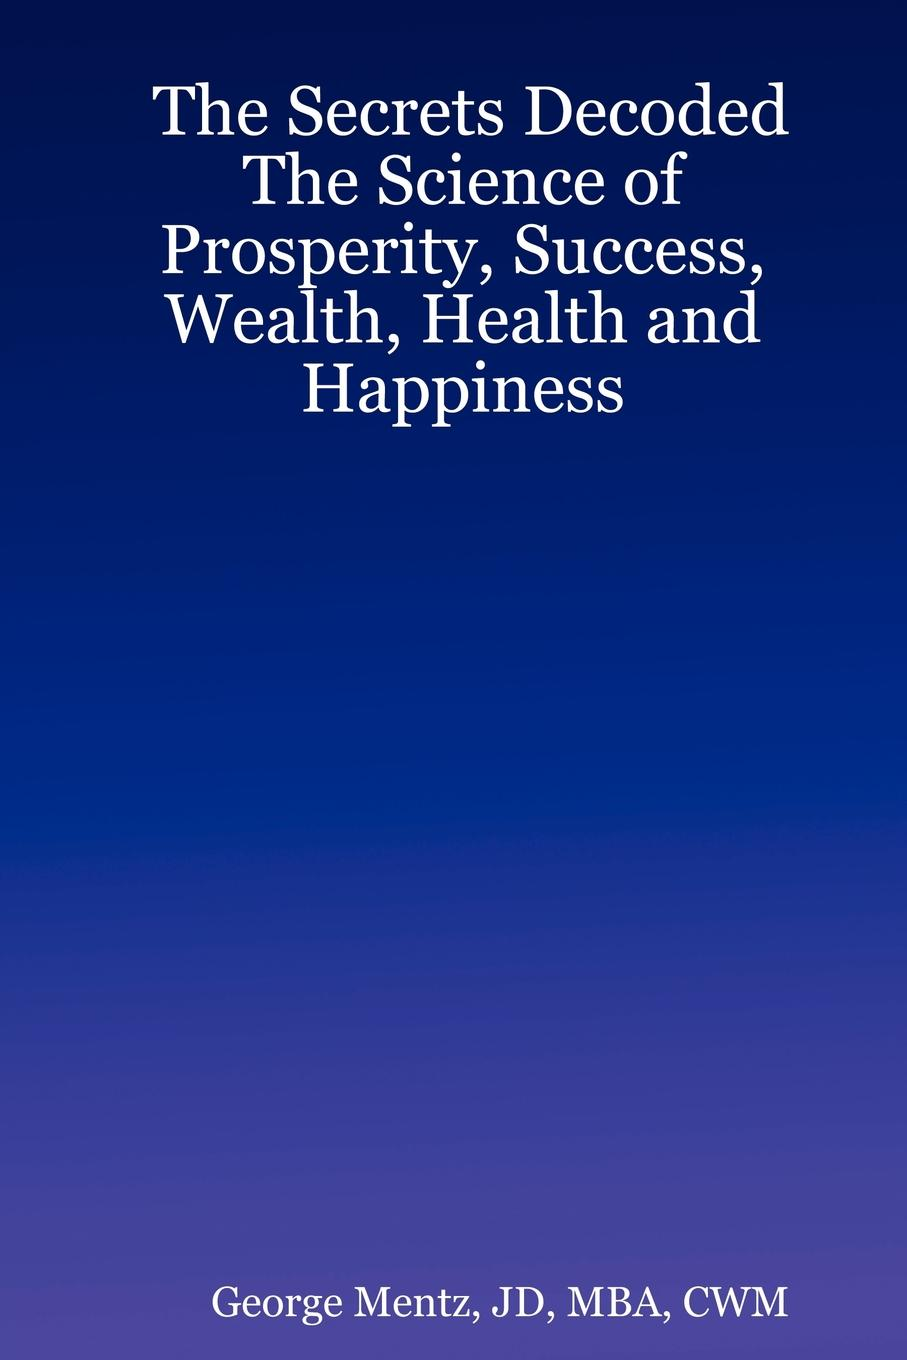 JD MBA CWM George Mentz The Secrets Decoded - The Science of Prosperity, Success, Wealth, Health and Happiness lynn jacobs f the secrets of college success